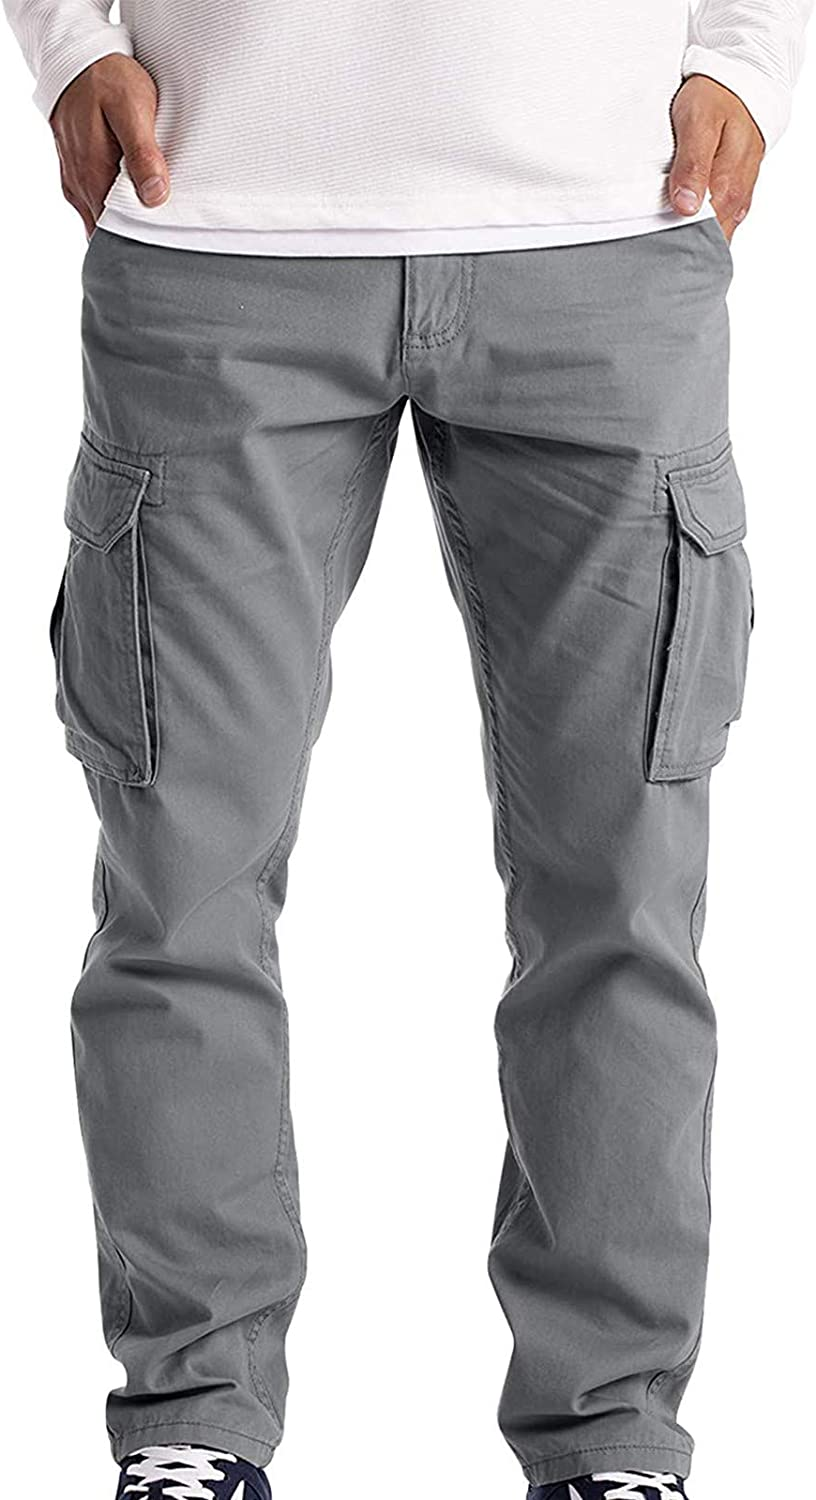 Men's Cargo Pants Straight Twill Summer Casual Tactical Pants Buttons Waist Multi-Pocket Outdoor Apparel - Limsea